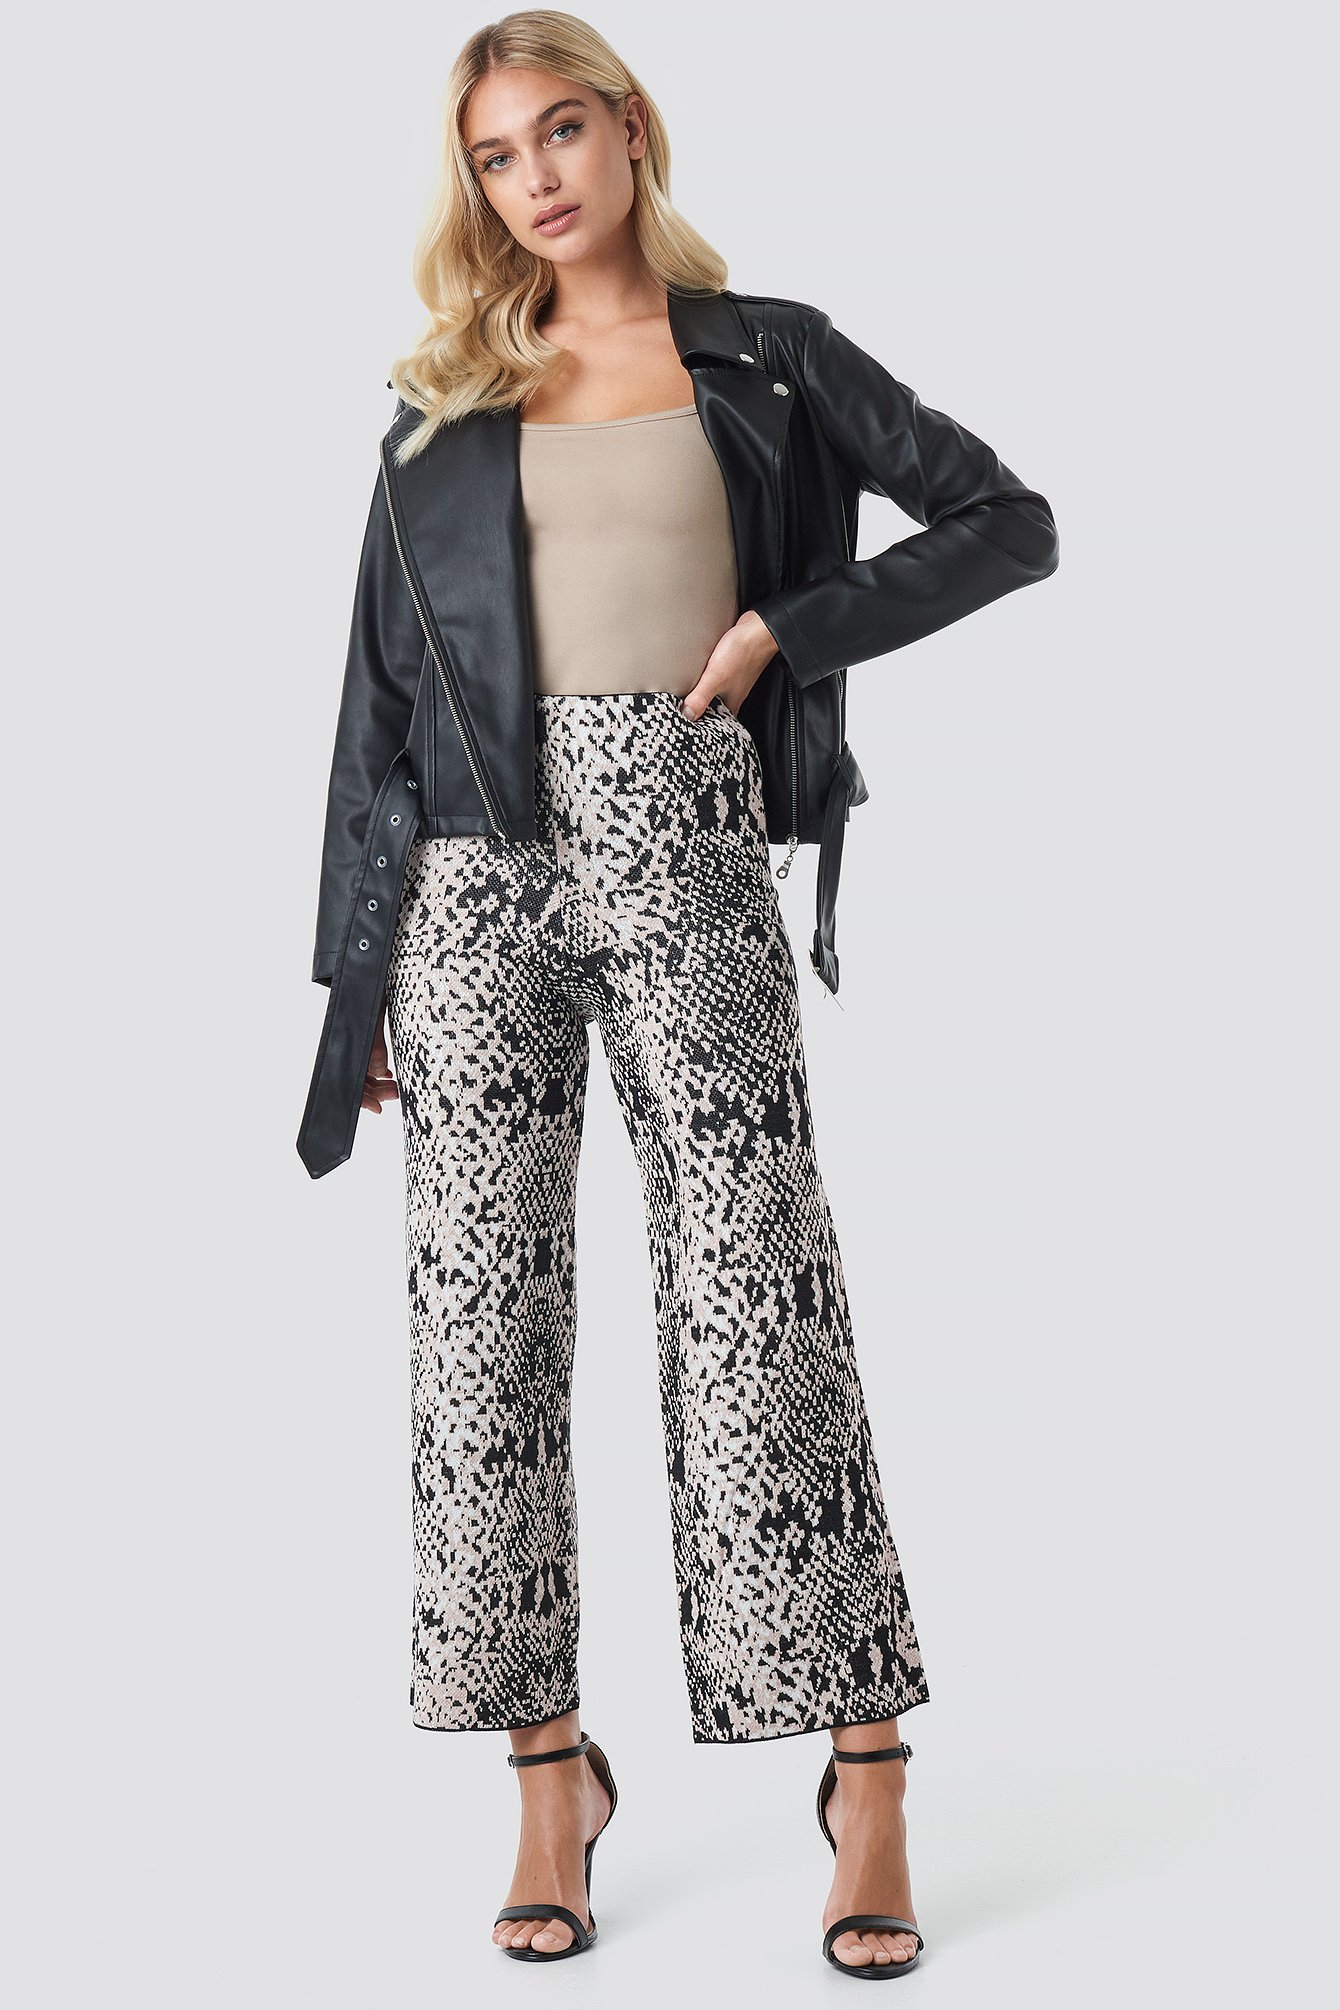 trendyol -  Snake Patterned Pant - Grey,Multicolor